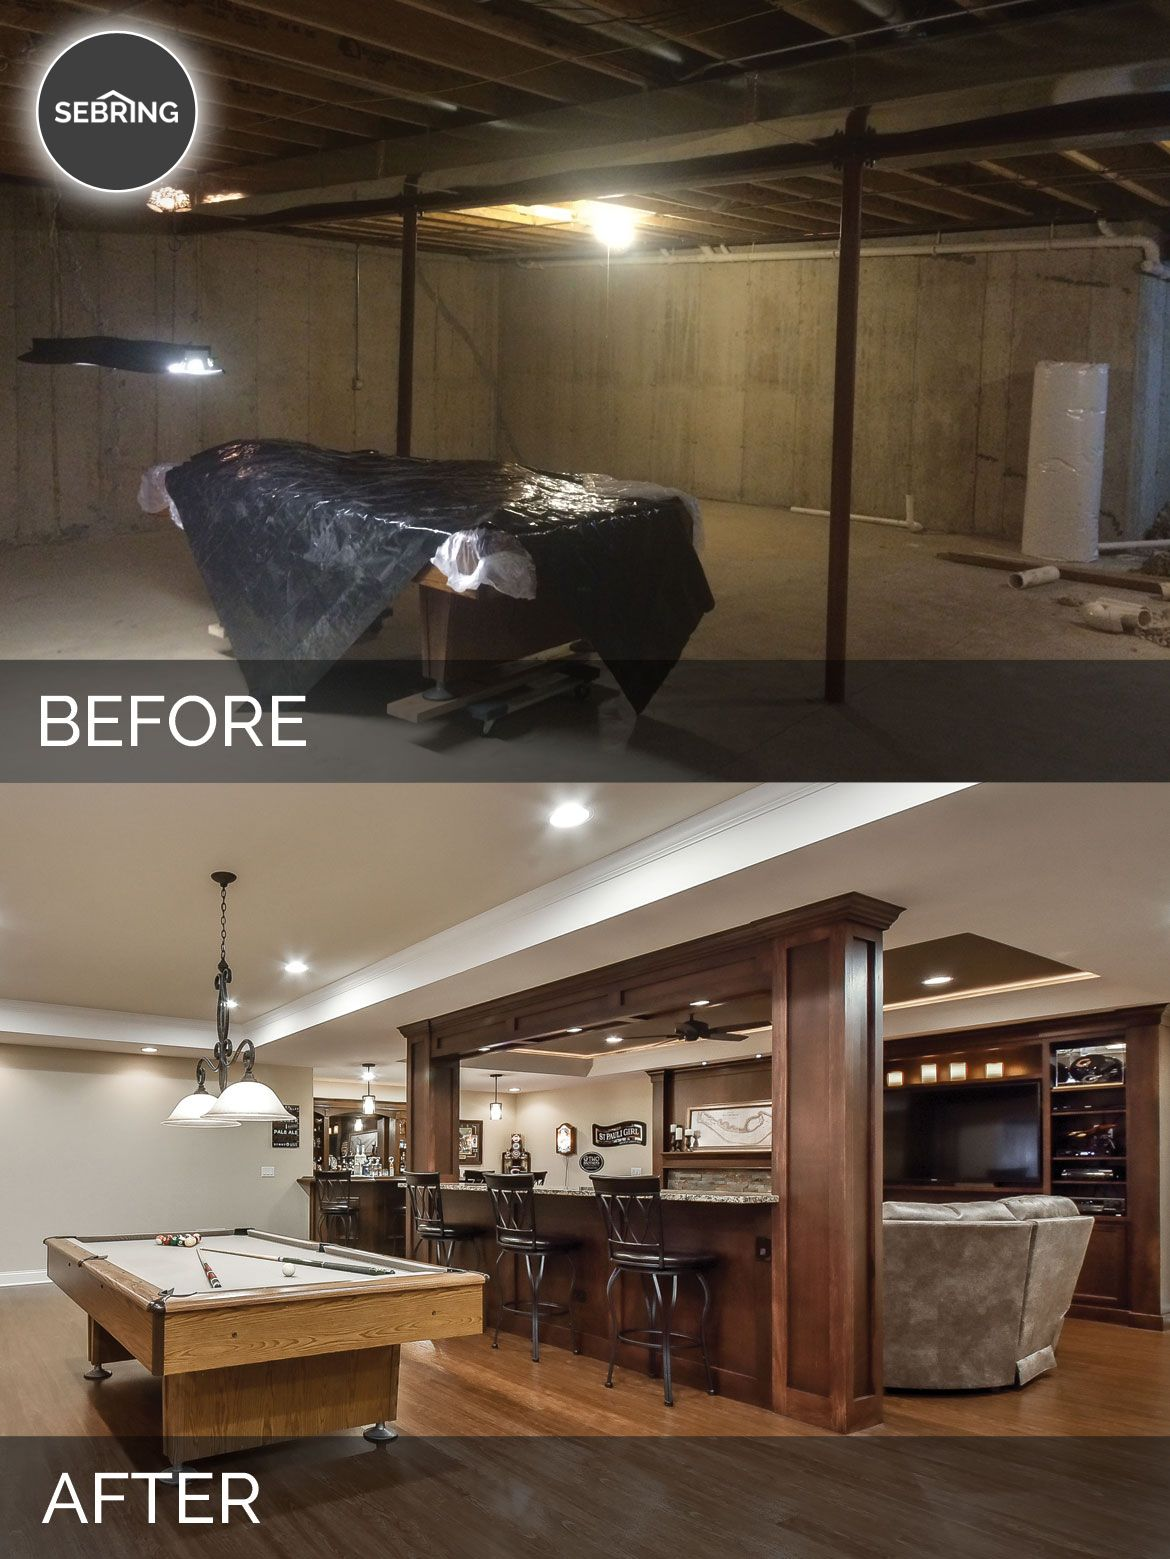 Brian & Kelli's Basement Before & After Pictures